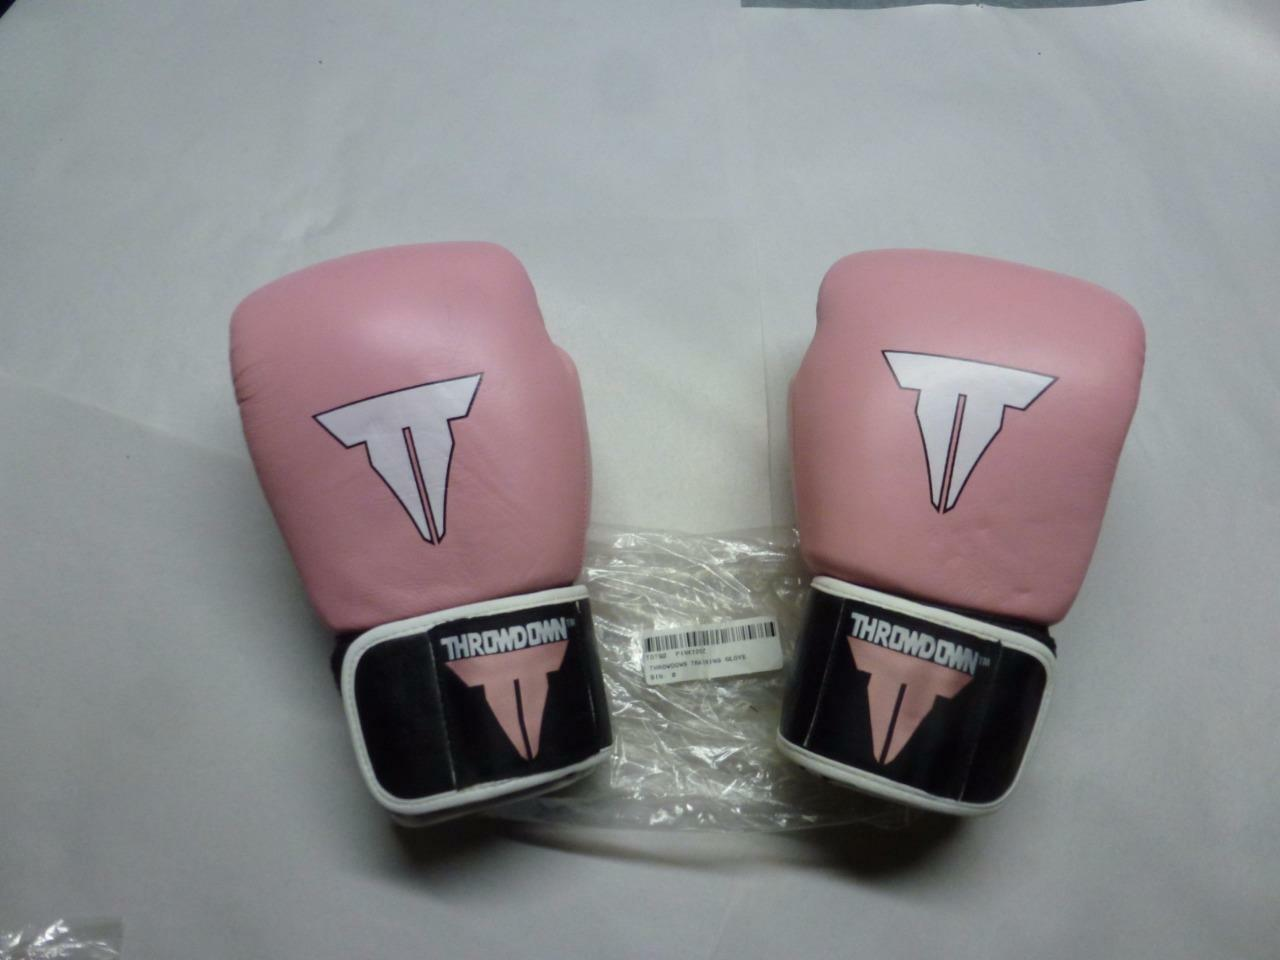 Pink Leather Women's Throwdown Boxing Training G s  12oz MMA UFC  new style